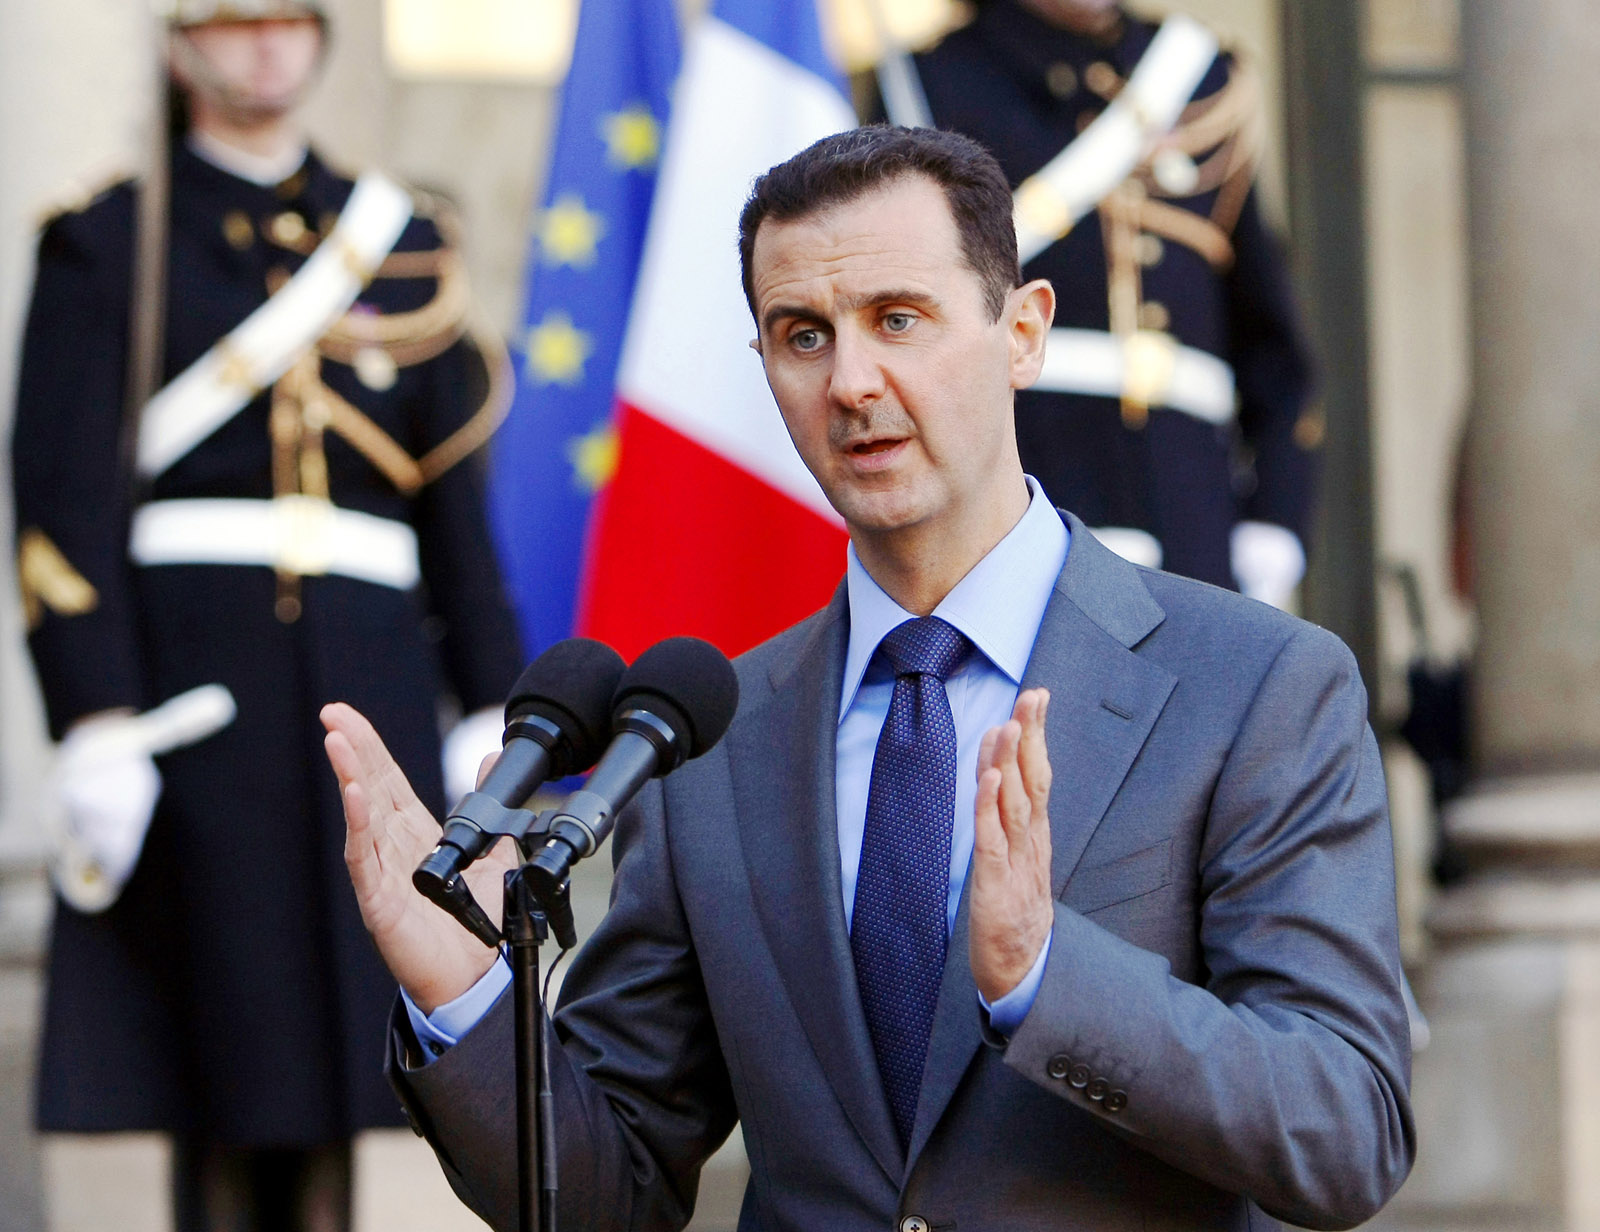 Assad's endgame likely rests in Russian hands